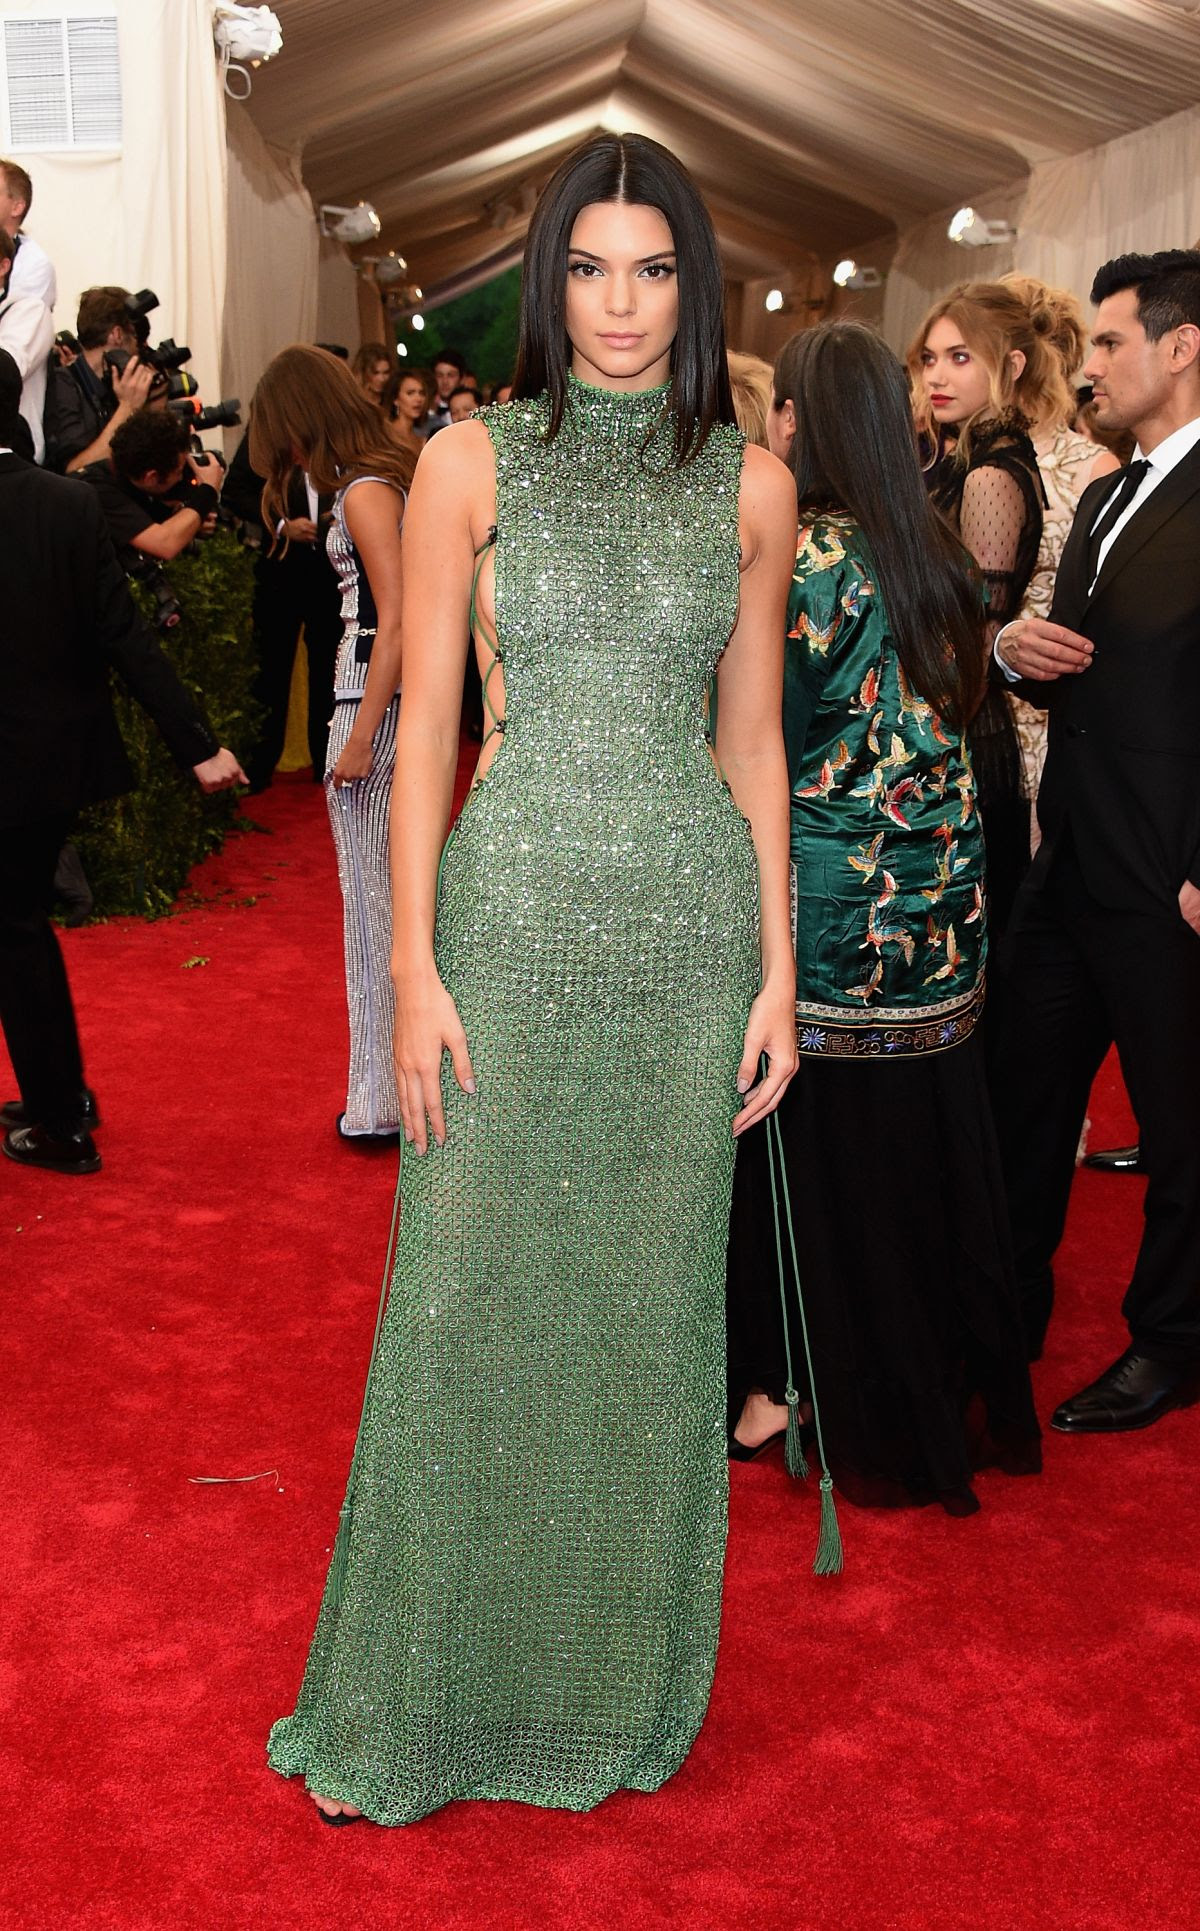 KENDALL JENNER at MET Gala 2015 in New York